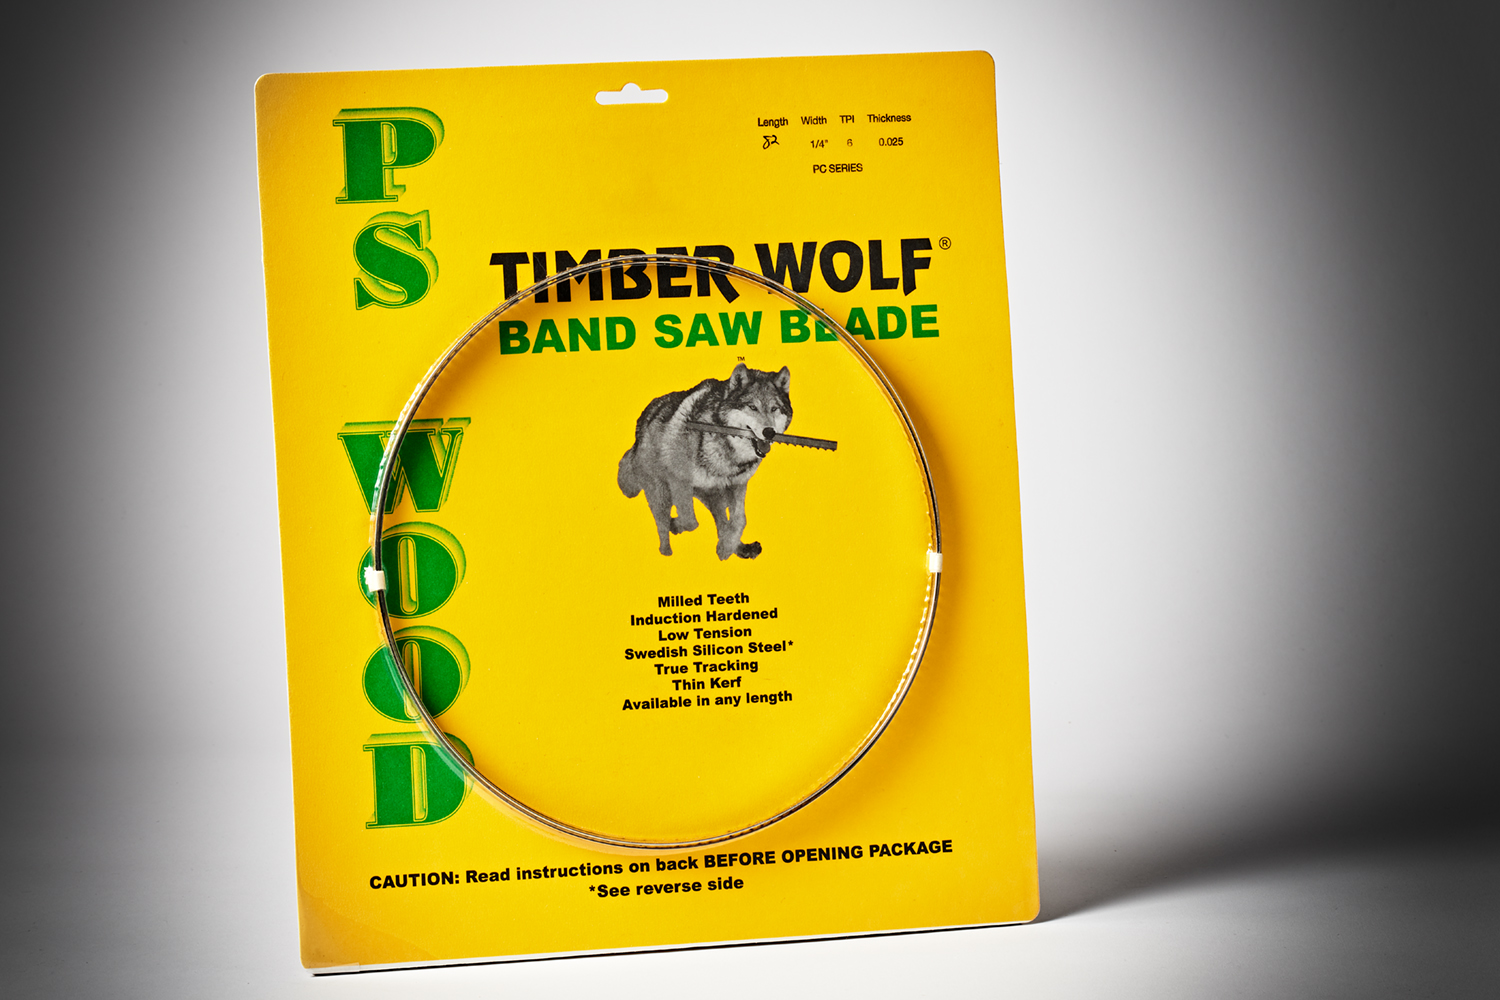 Timber Wolf Bandsaw Blade 82 1-4 6TPI PC Series-1